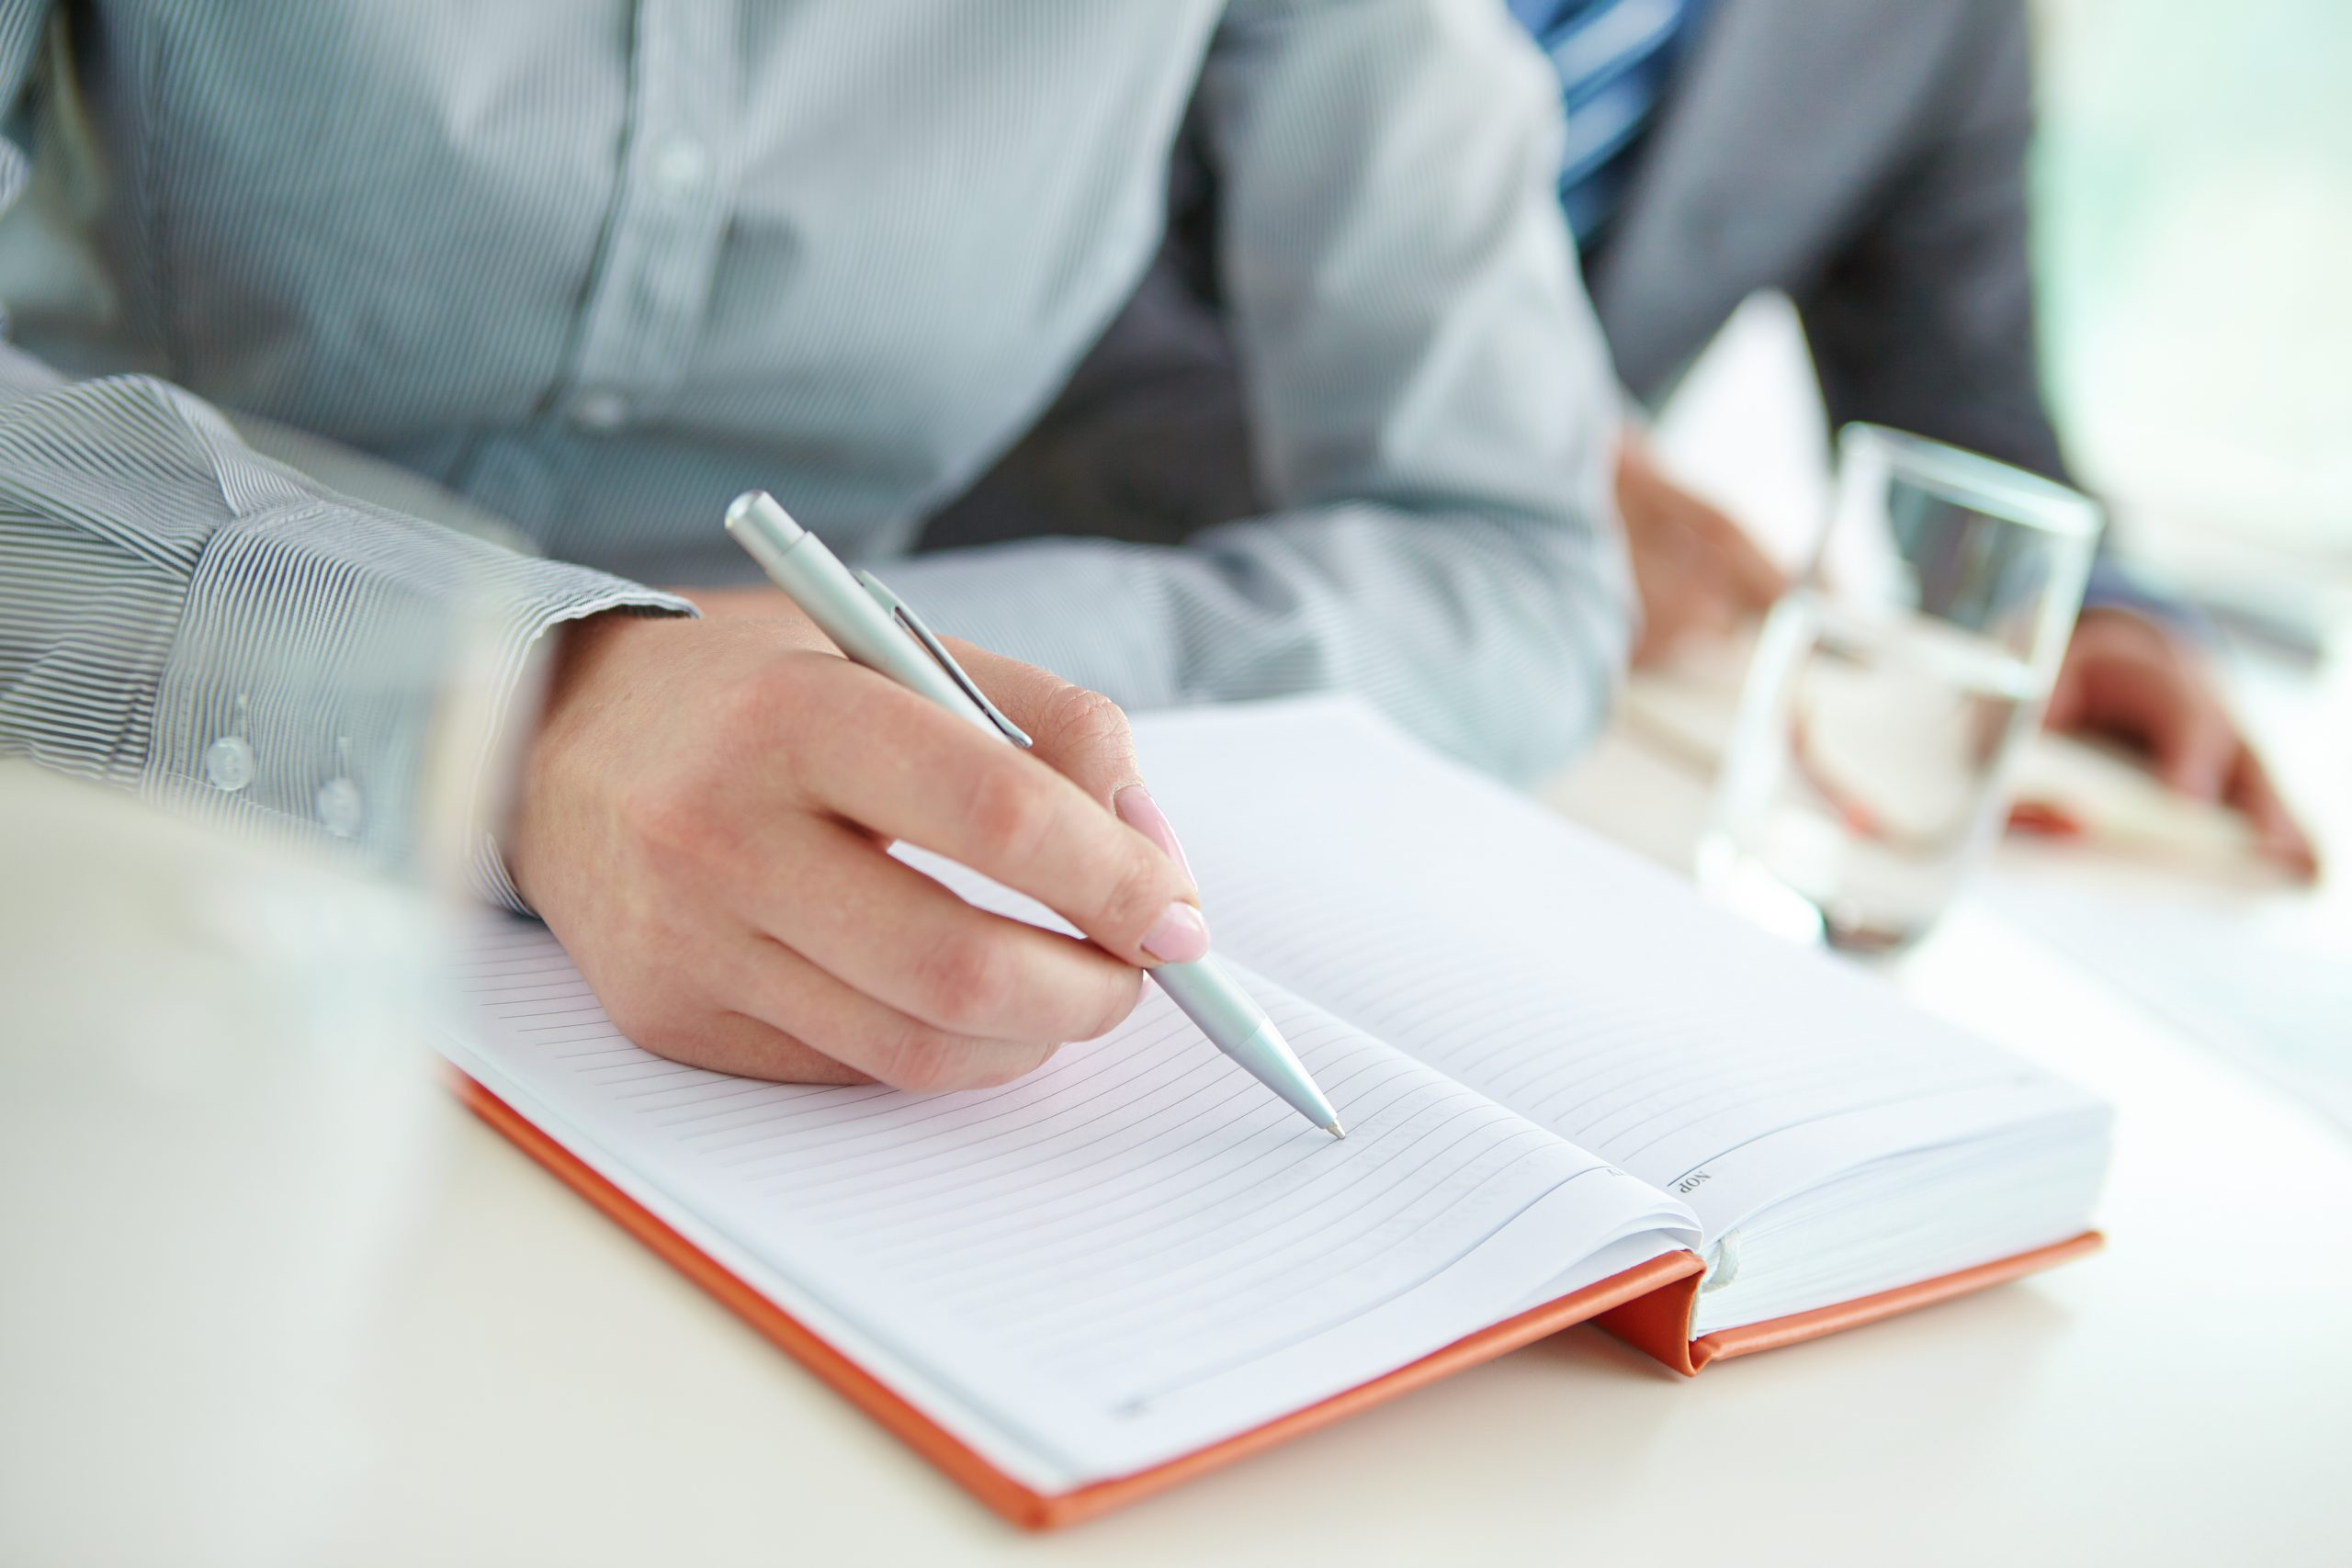 Businesswoman hand holding pen over empty notebook page